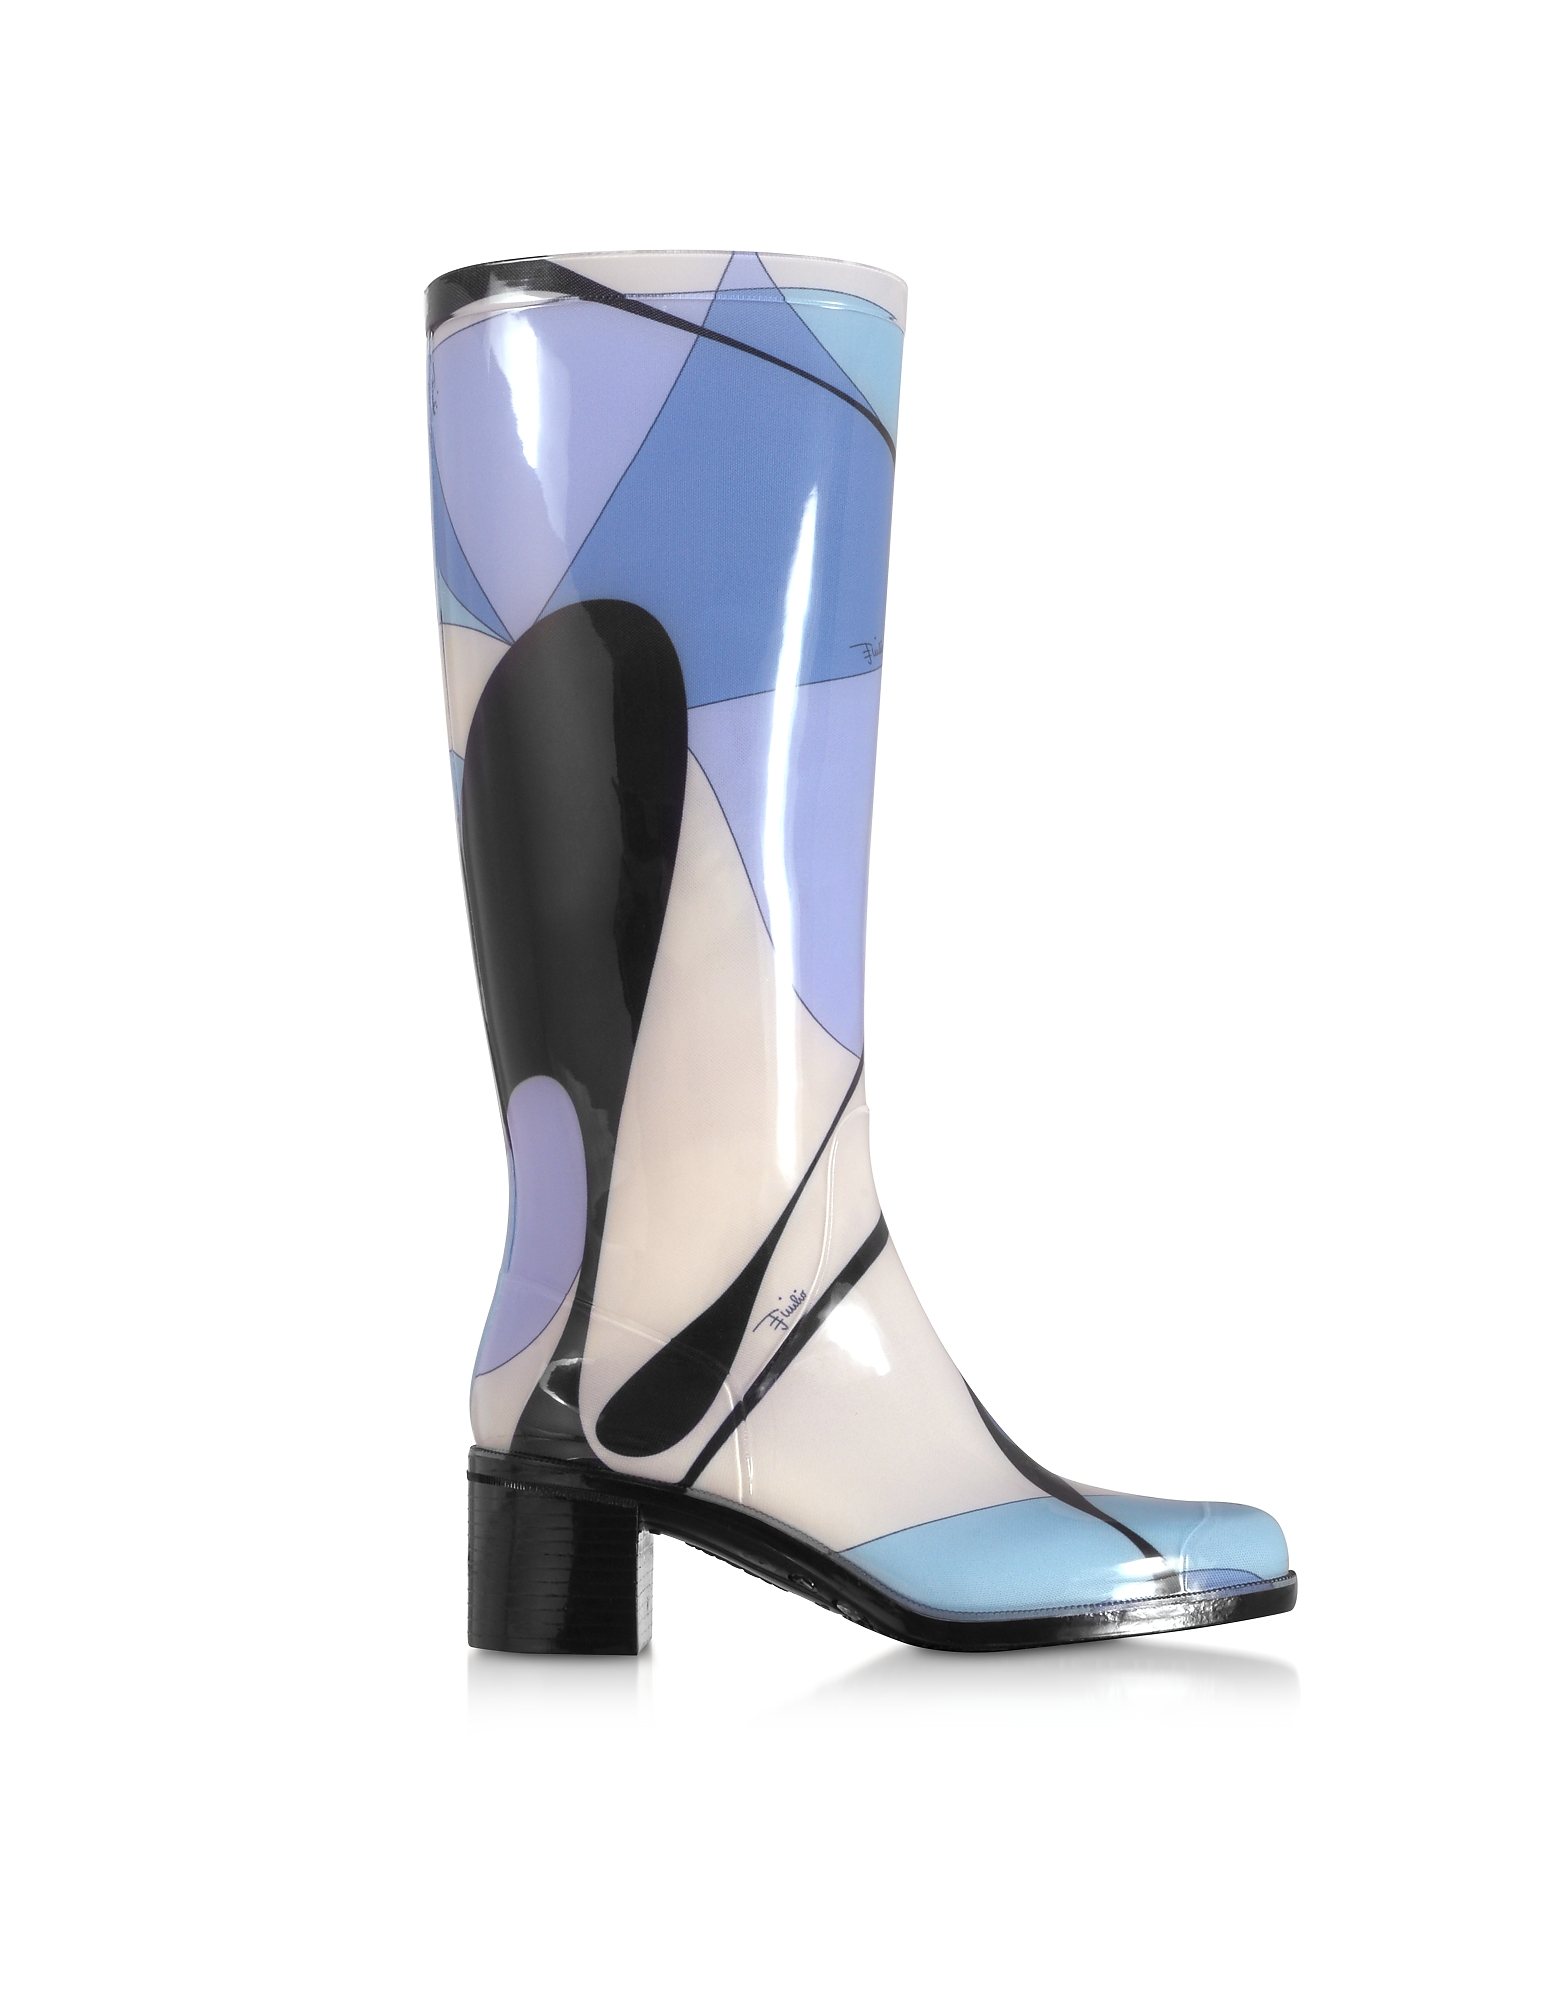 60s Shoes, Boots | 70s Shoes, Platforms, Boots Emilio Pucci  Shoes Light Blue Abstract Print Tall Rain Boots $231.50 AT vintagedancer.com